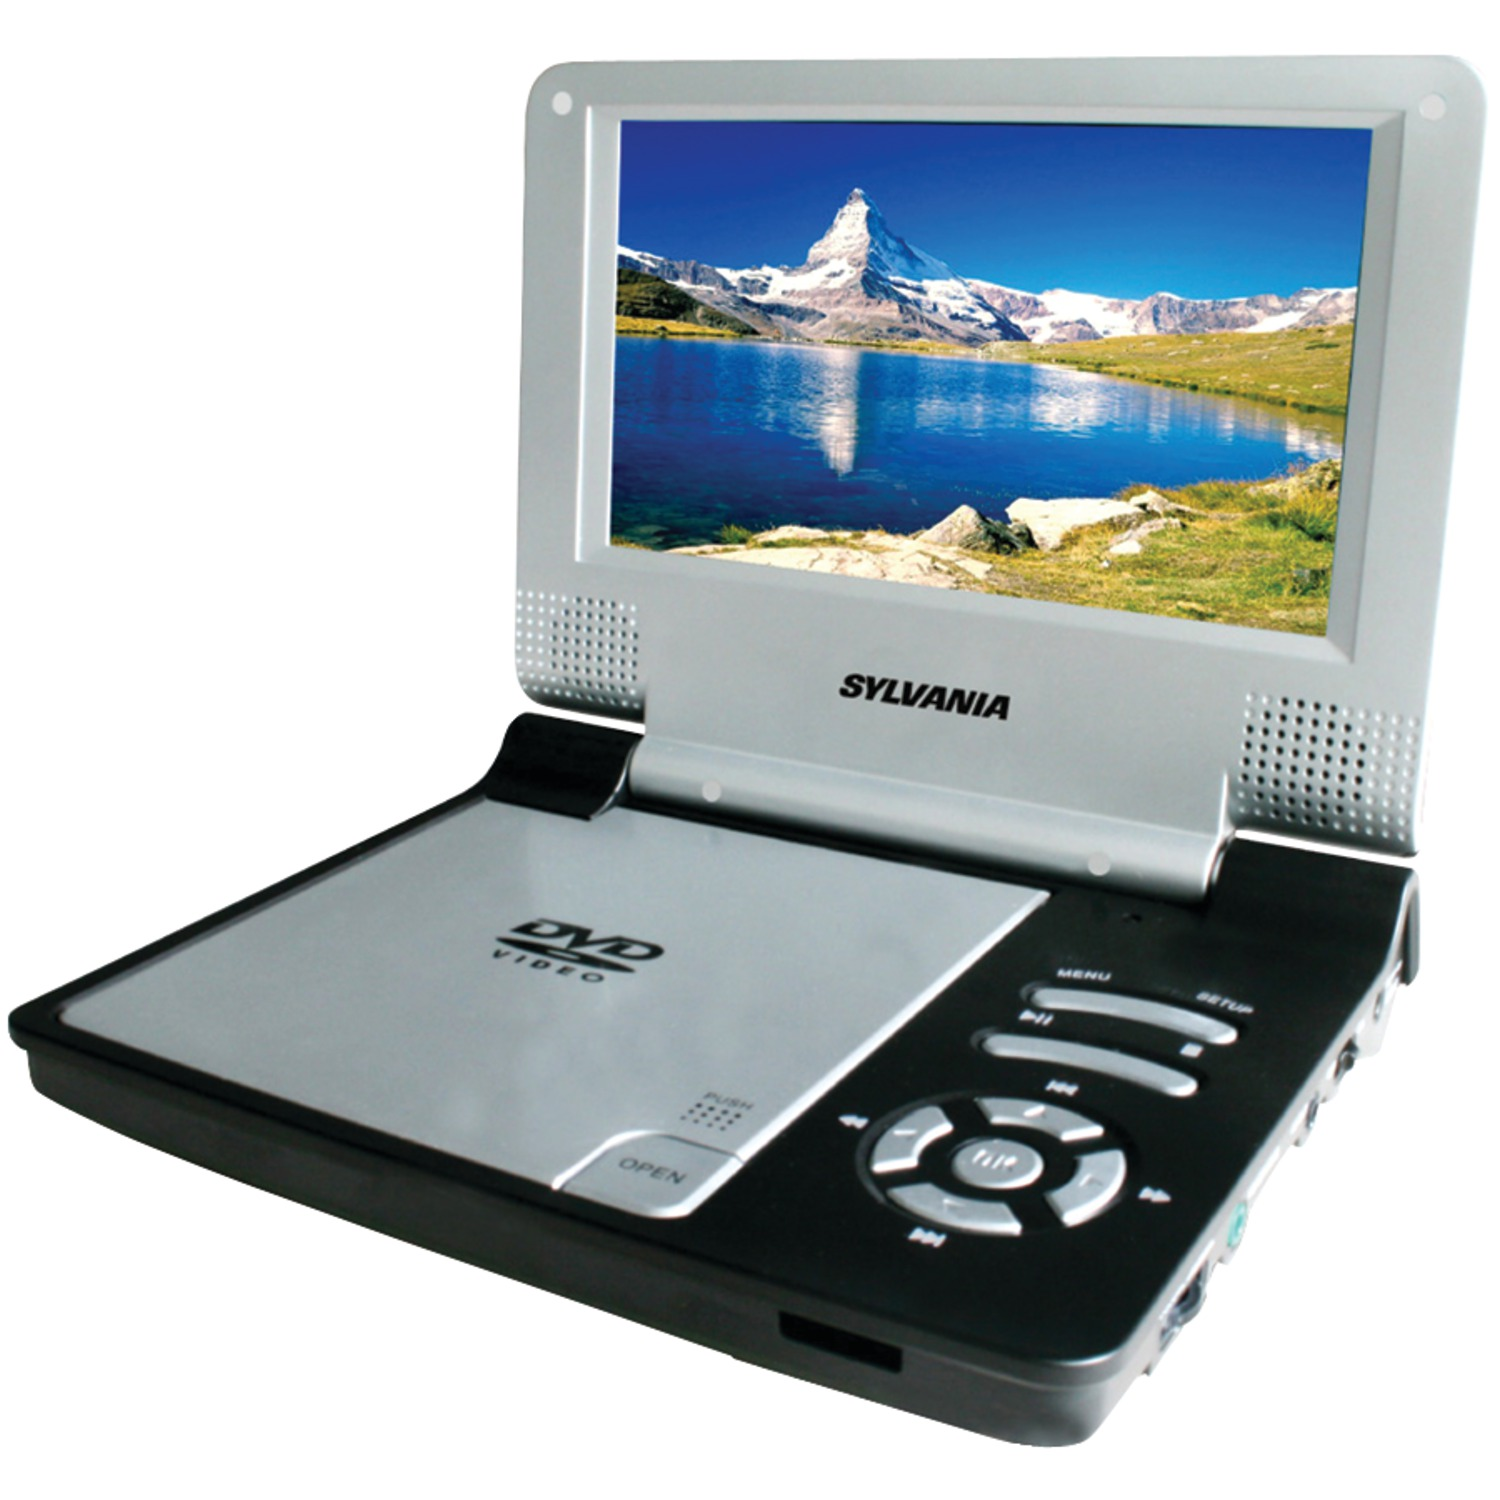 Sylvania 7 Portable Dvd Player With Swivel Screen Black Portable Tv Remote Portable Cd Player Amazon Portable Charger Ryanair: 7 Inch. Portable DVD Player (Black